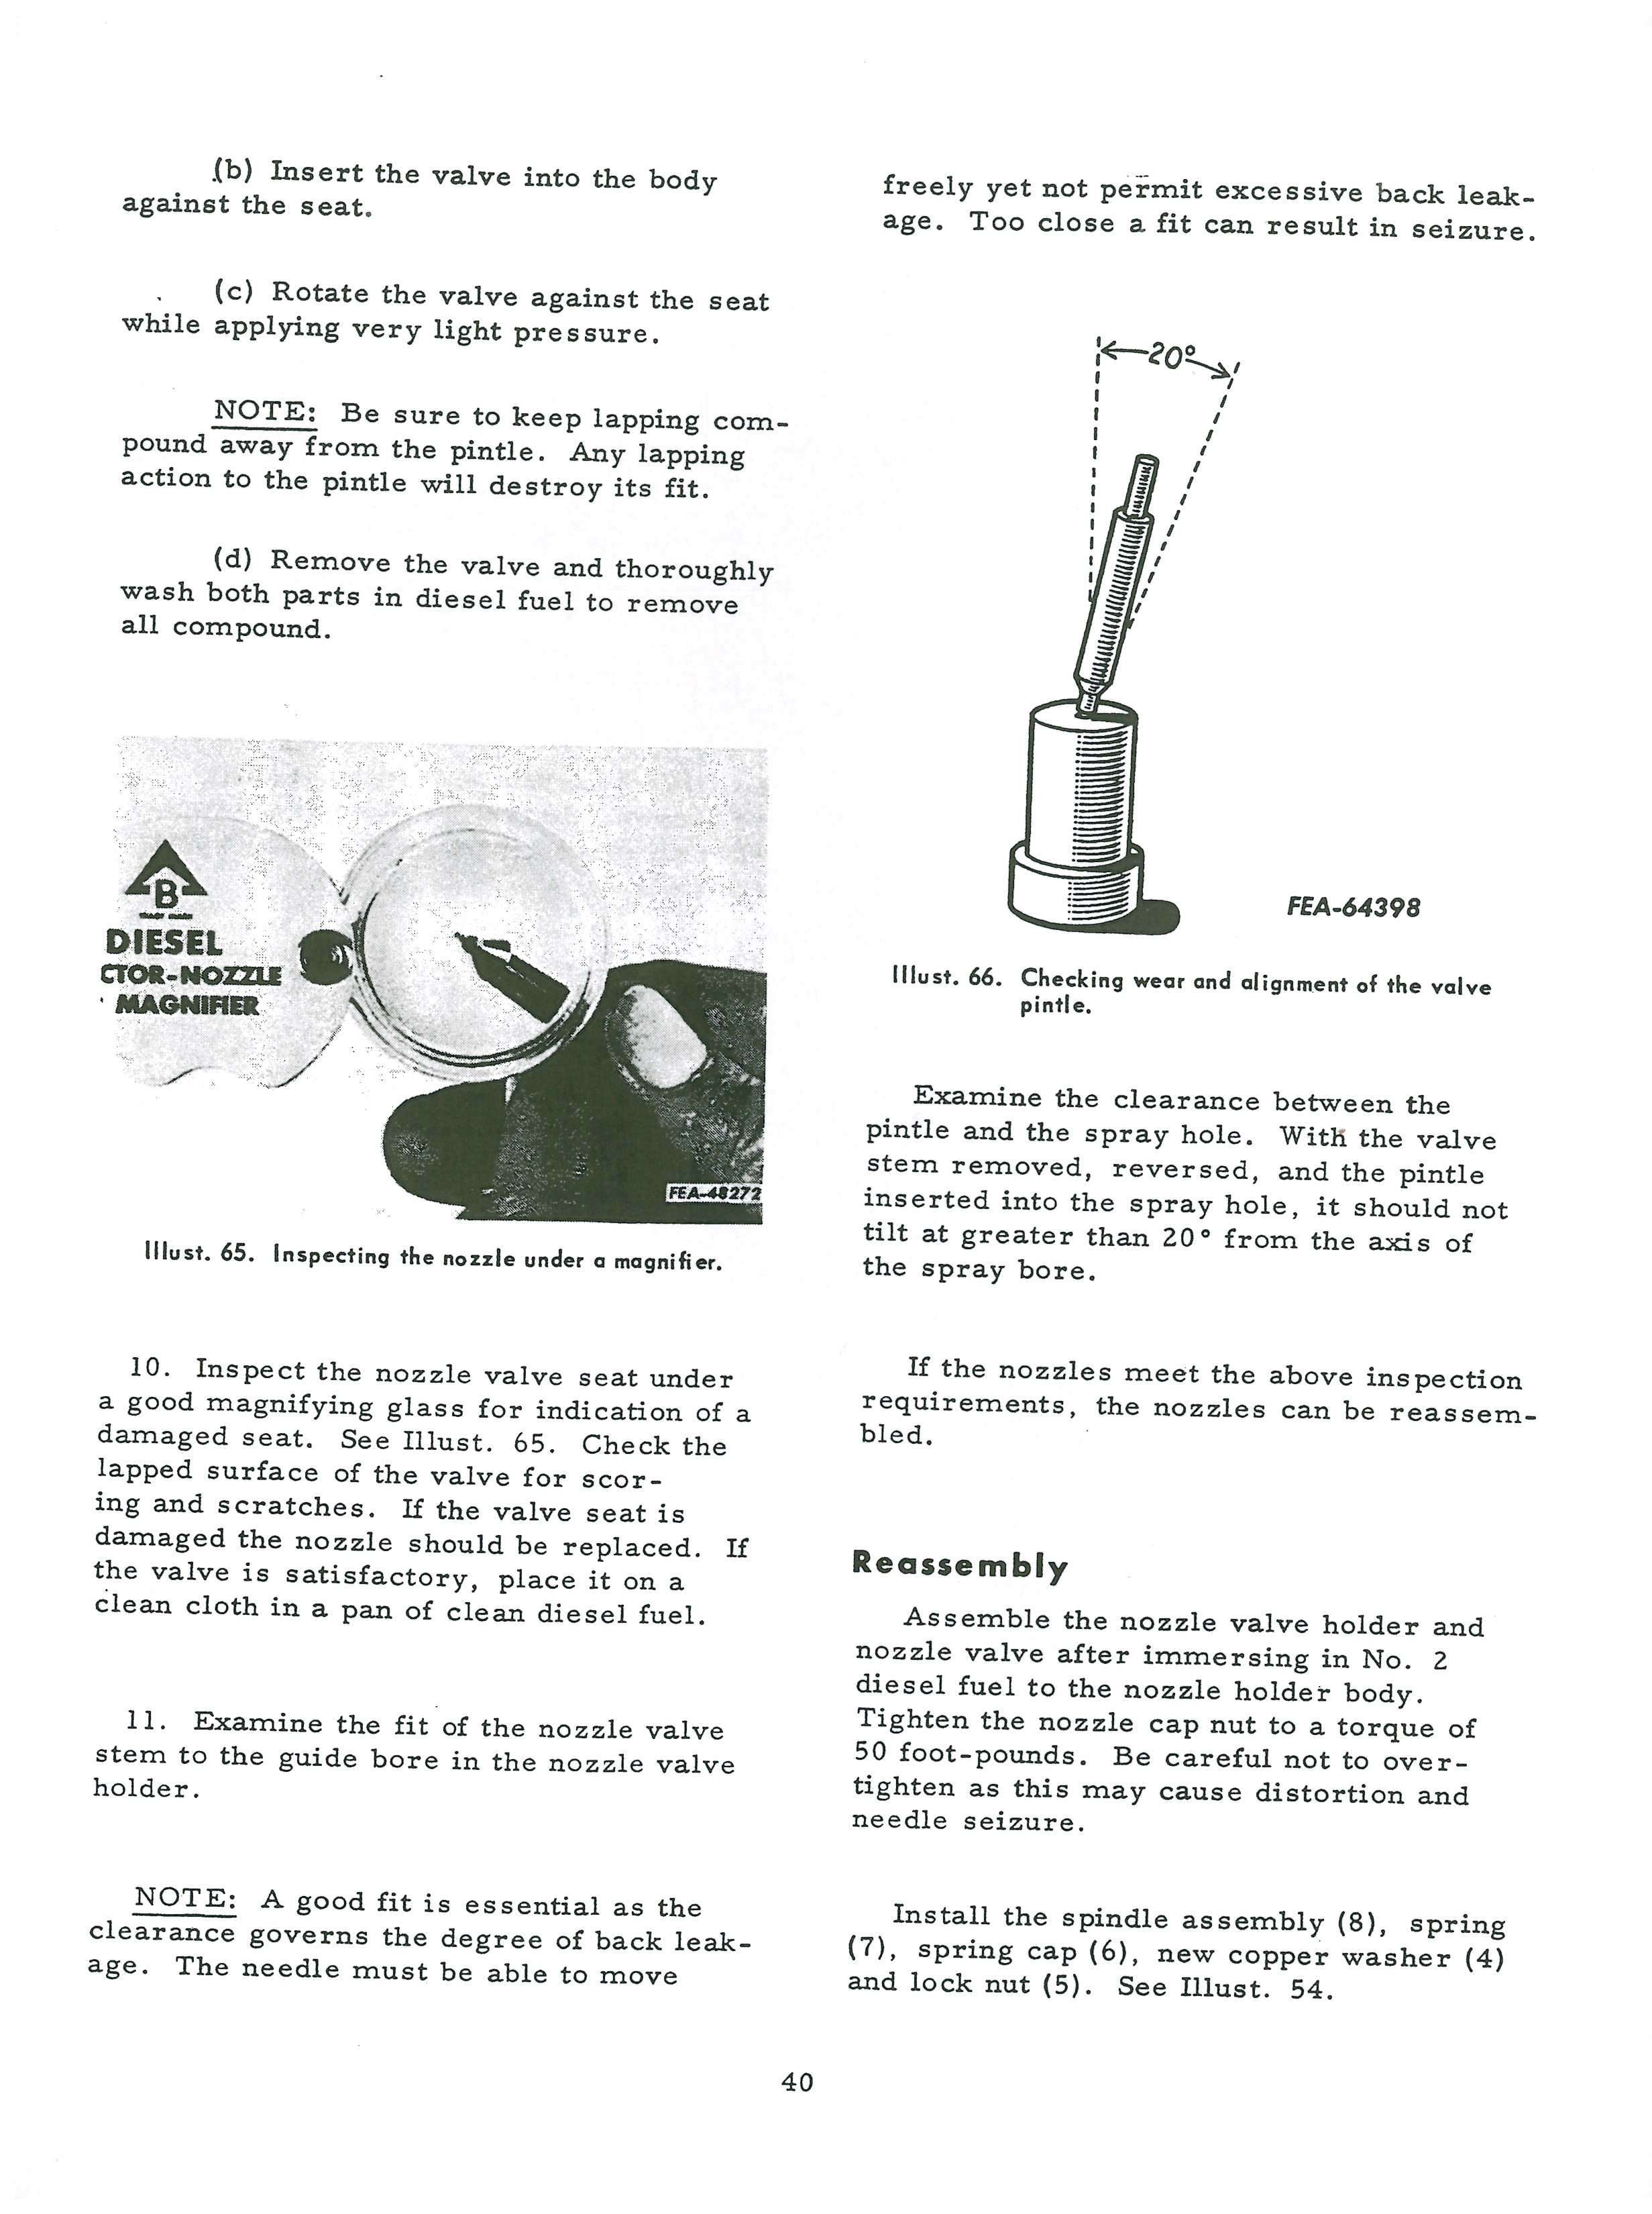 Stanadyne Injection Pump Manual Manual Guide